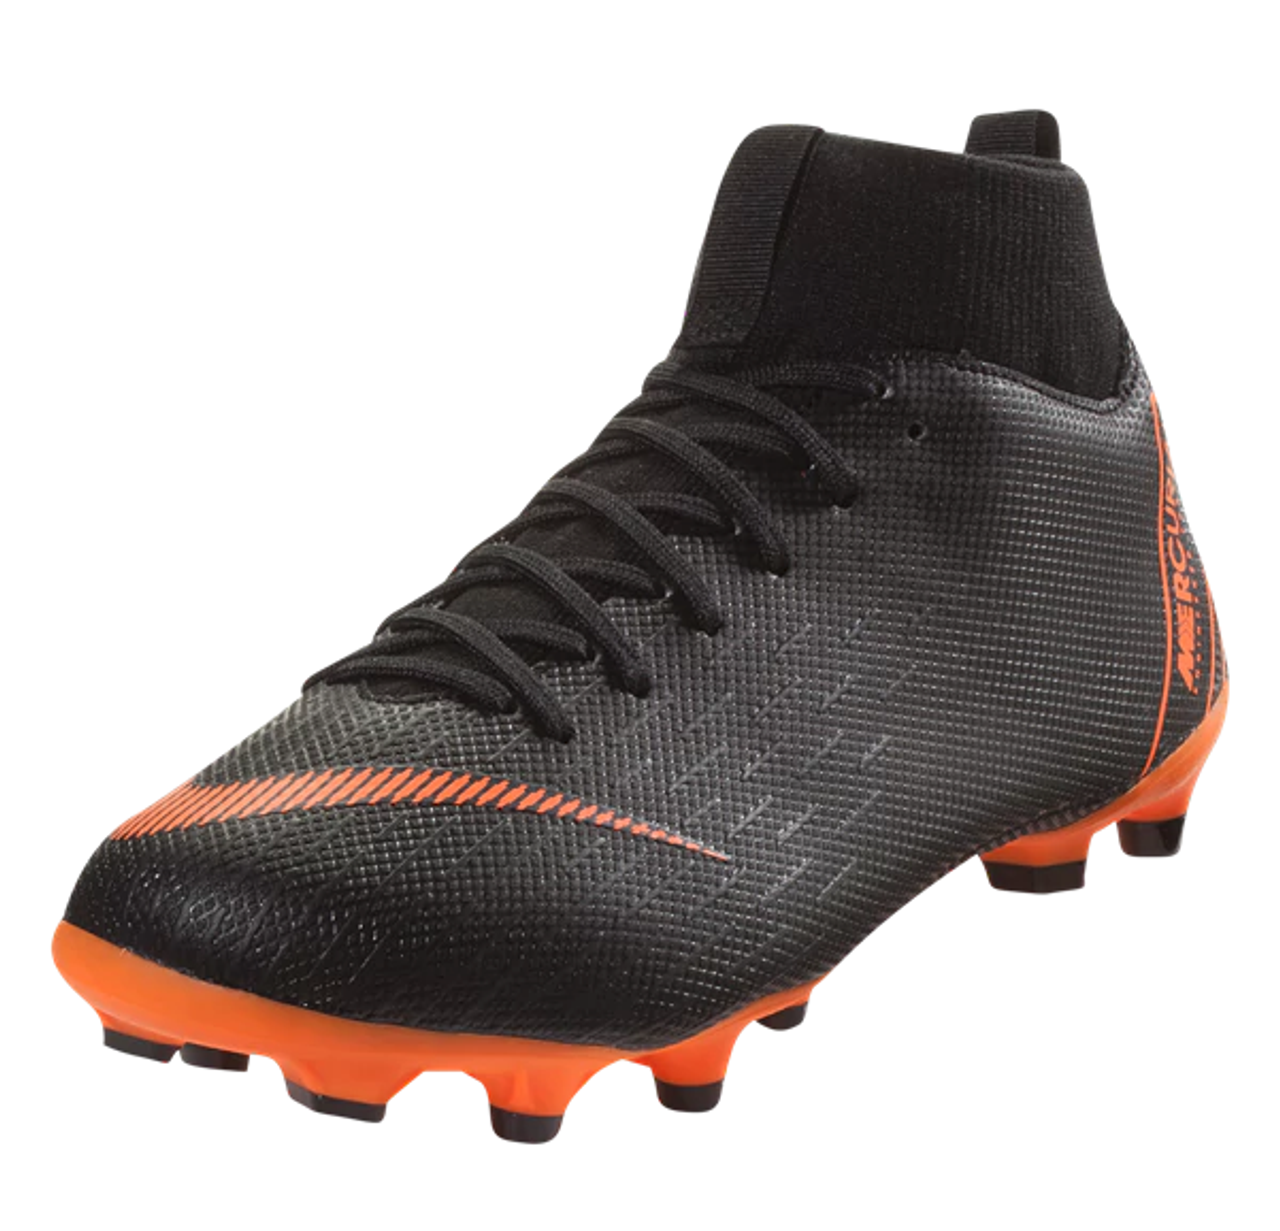 a2969c7b8b8a Nike Jr. Superfly 6 Academy GS MG - Black/Total Orange/White (3318) - ohp  soccer